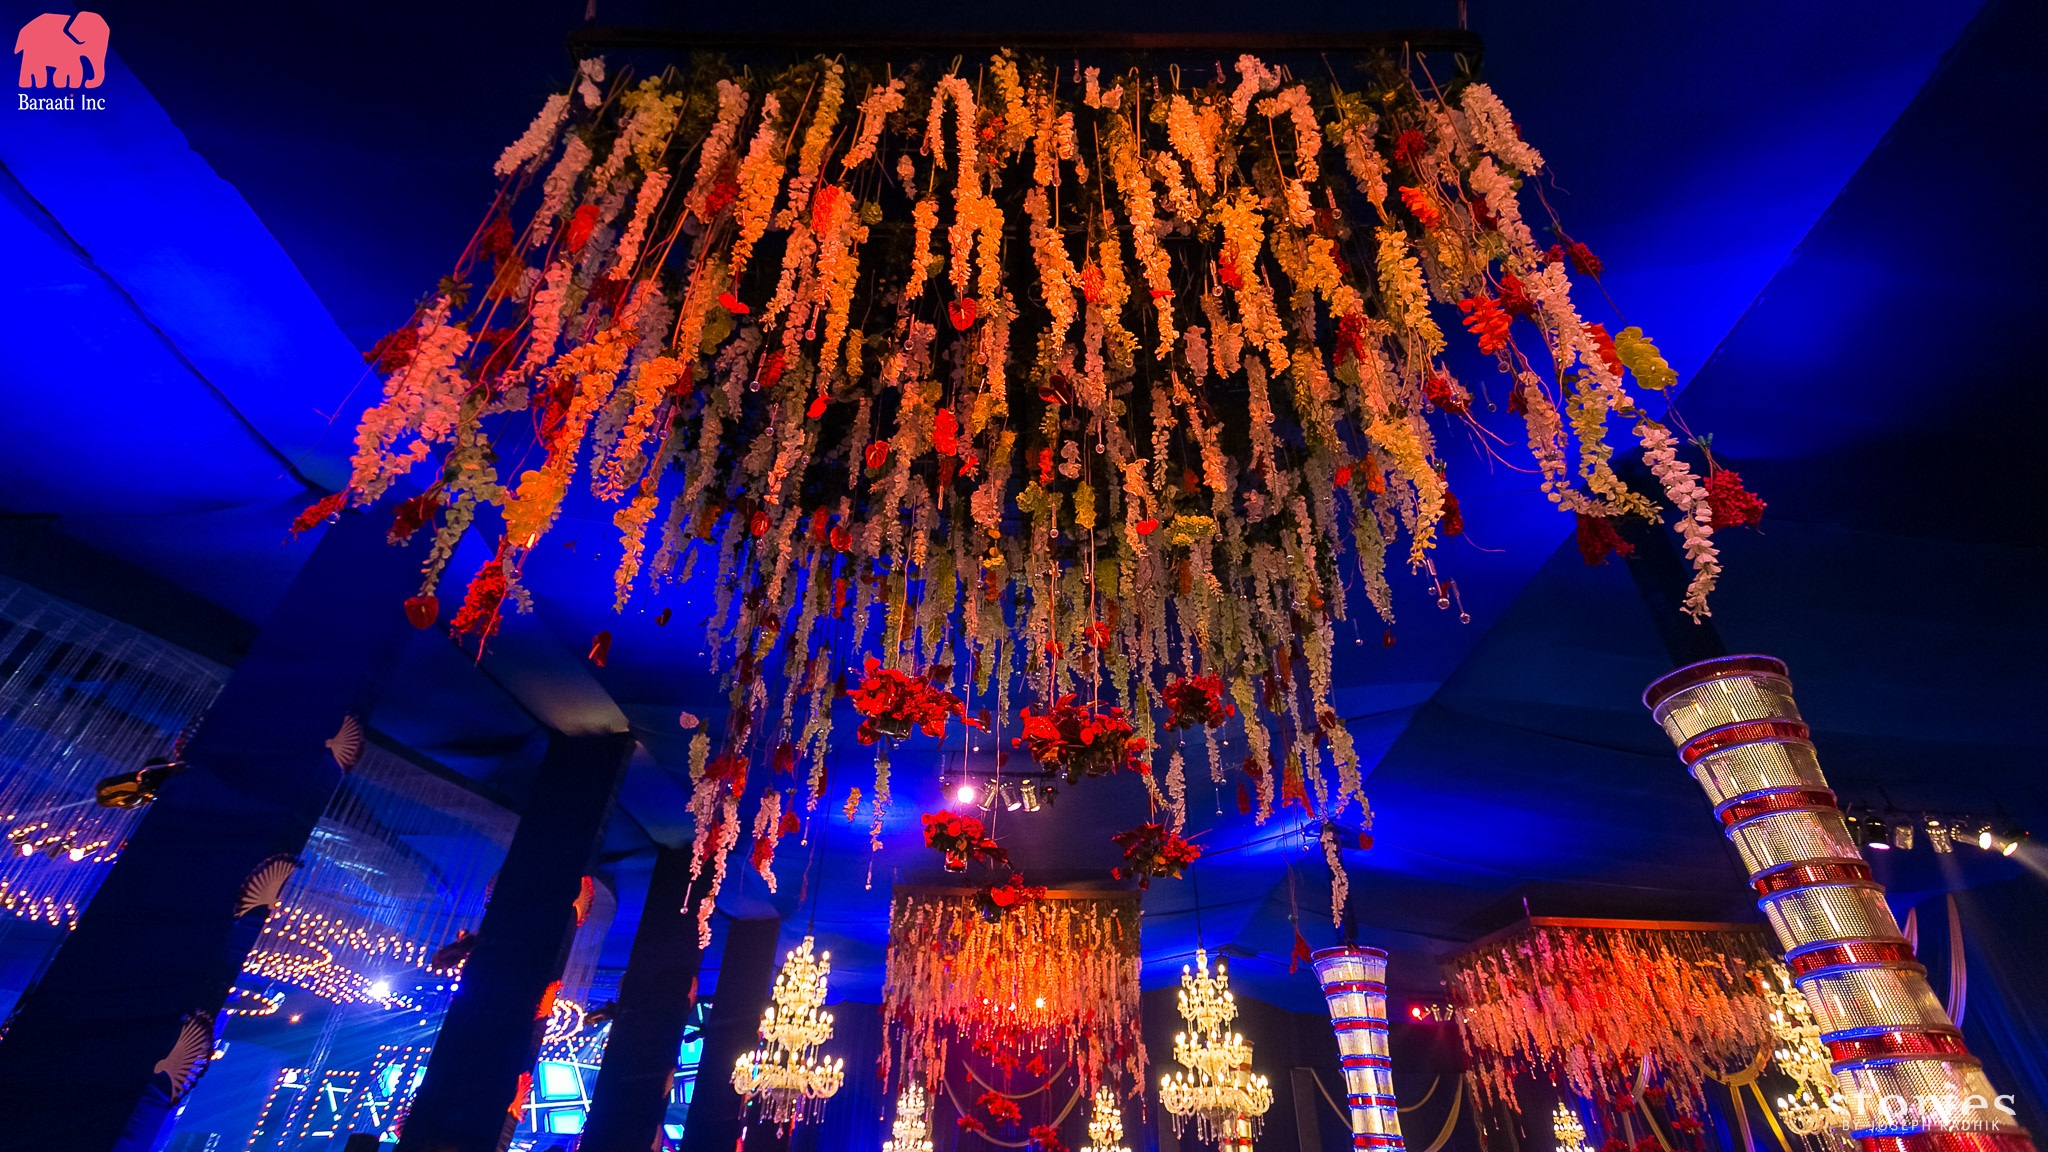 Flower Decorations Chandelier| Sangeet Venue Decor | Baraati Inc | This Couple's IIFA Themed Sangeet Is the Most Fun Thing You'll See Today | FunctionMania